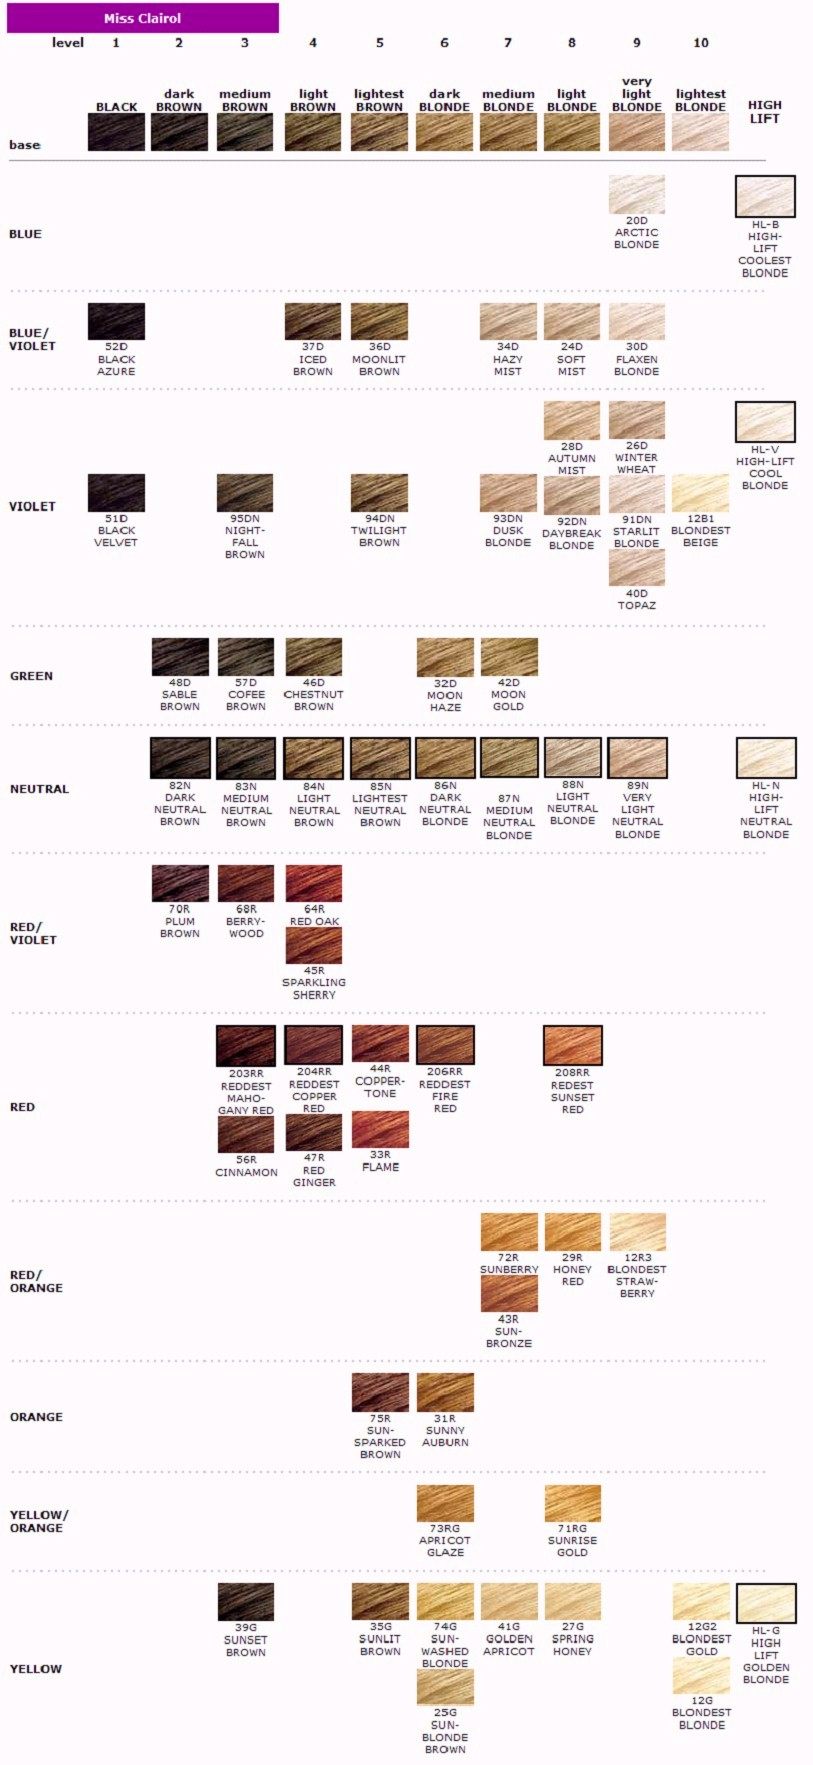 clairol professional color chart: Ms clairol professional hair color hairstyle ideas